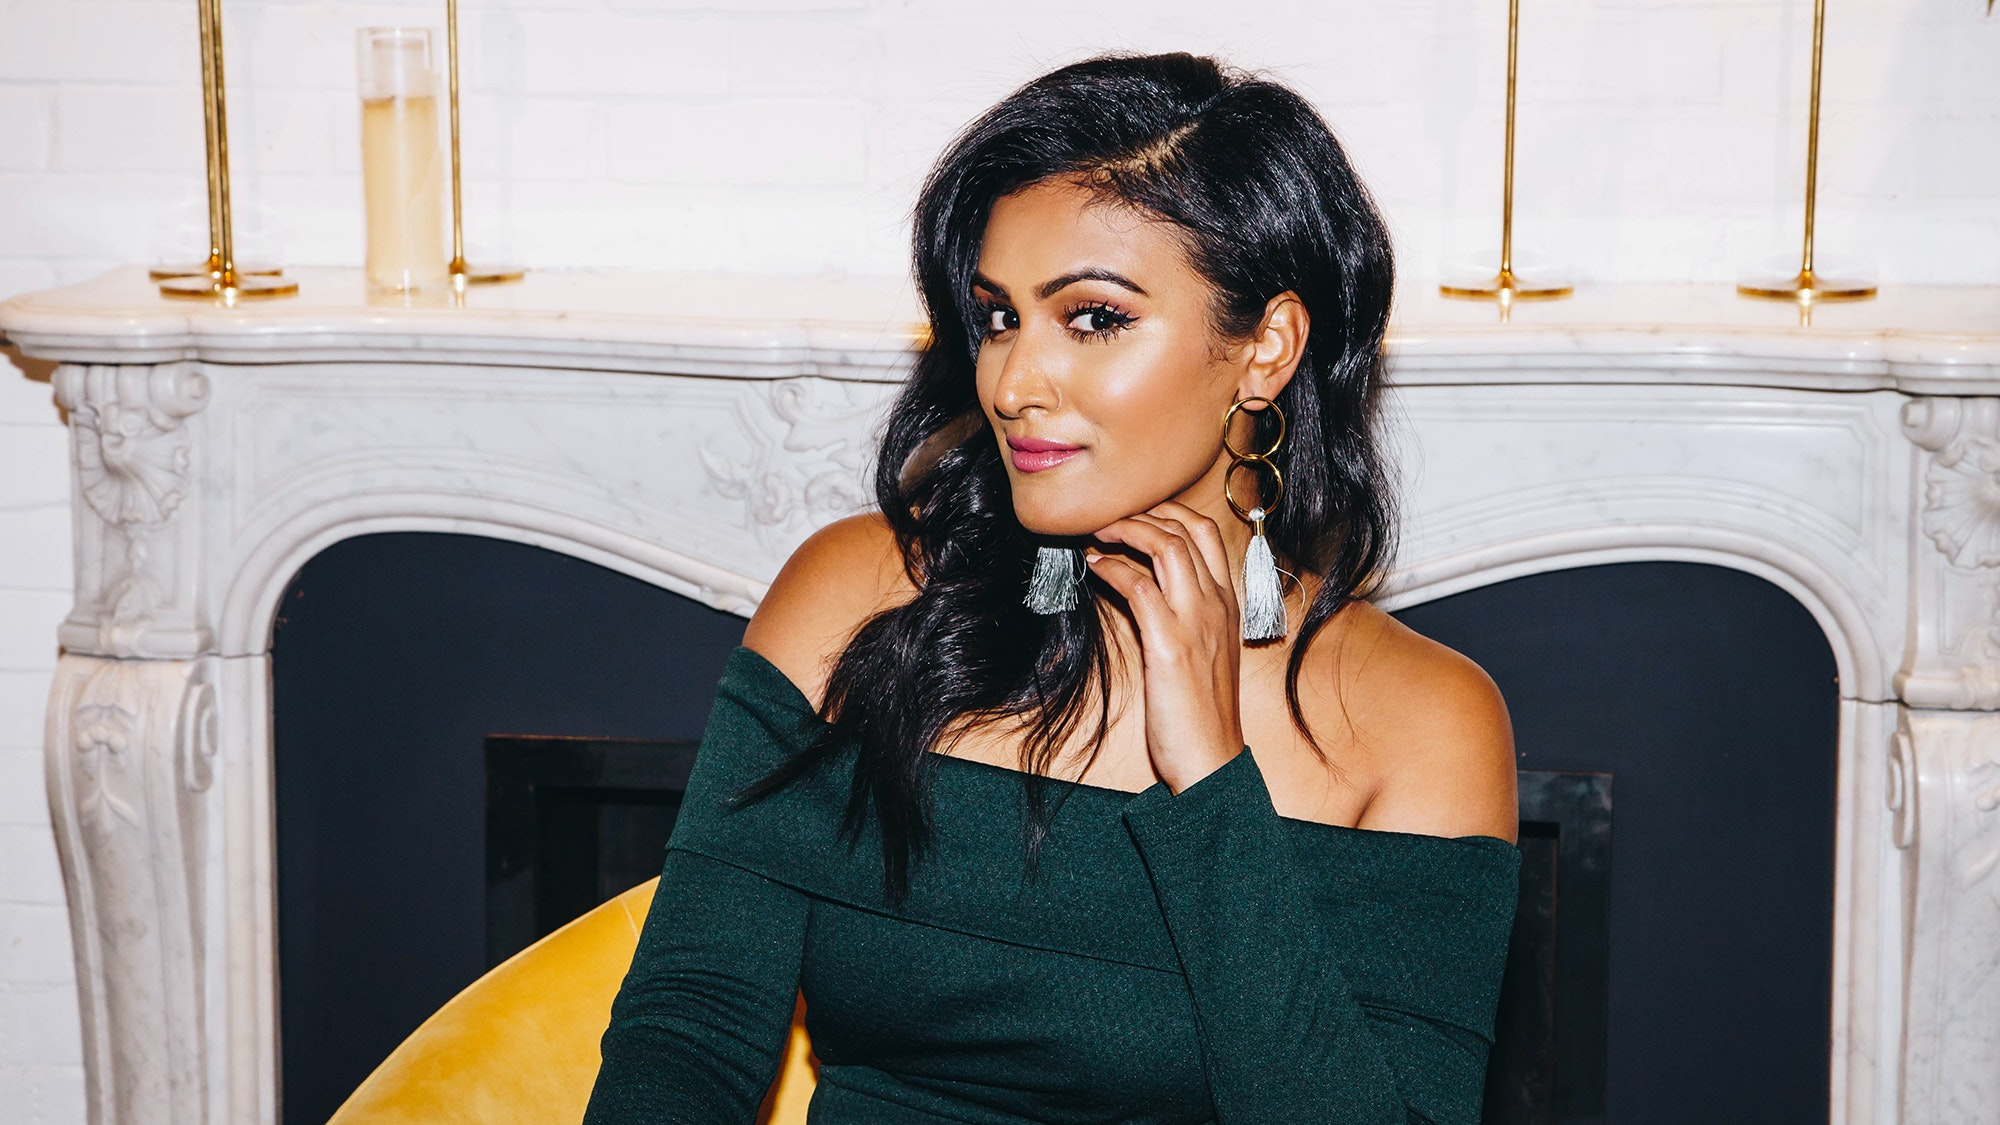 Nina Davuluri on the Beauty Mishap That Inspired Her to Create Her Own Skincare Line